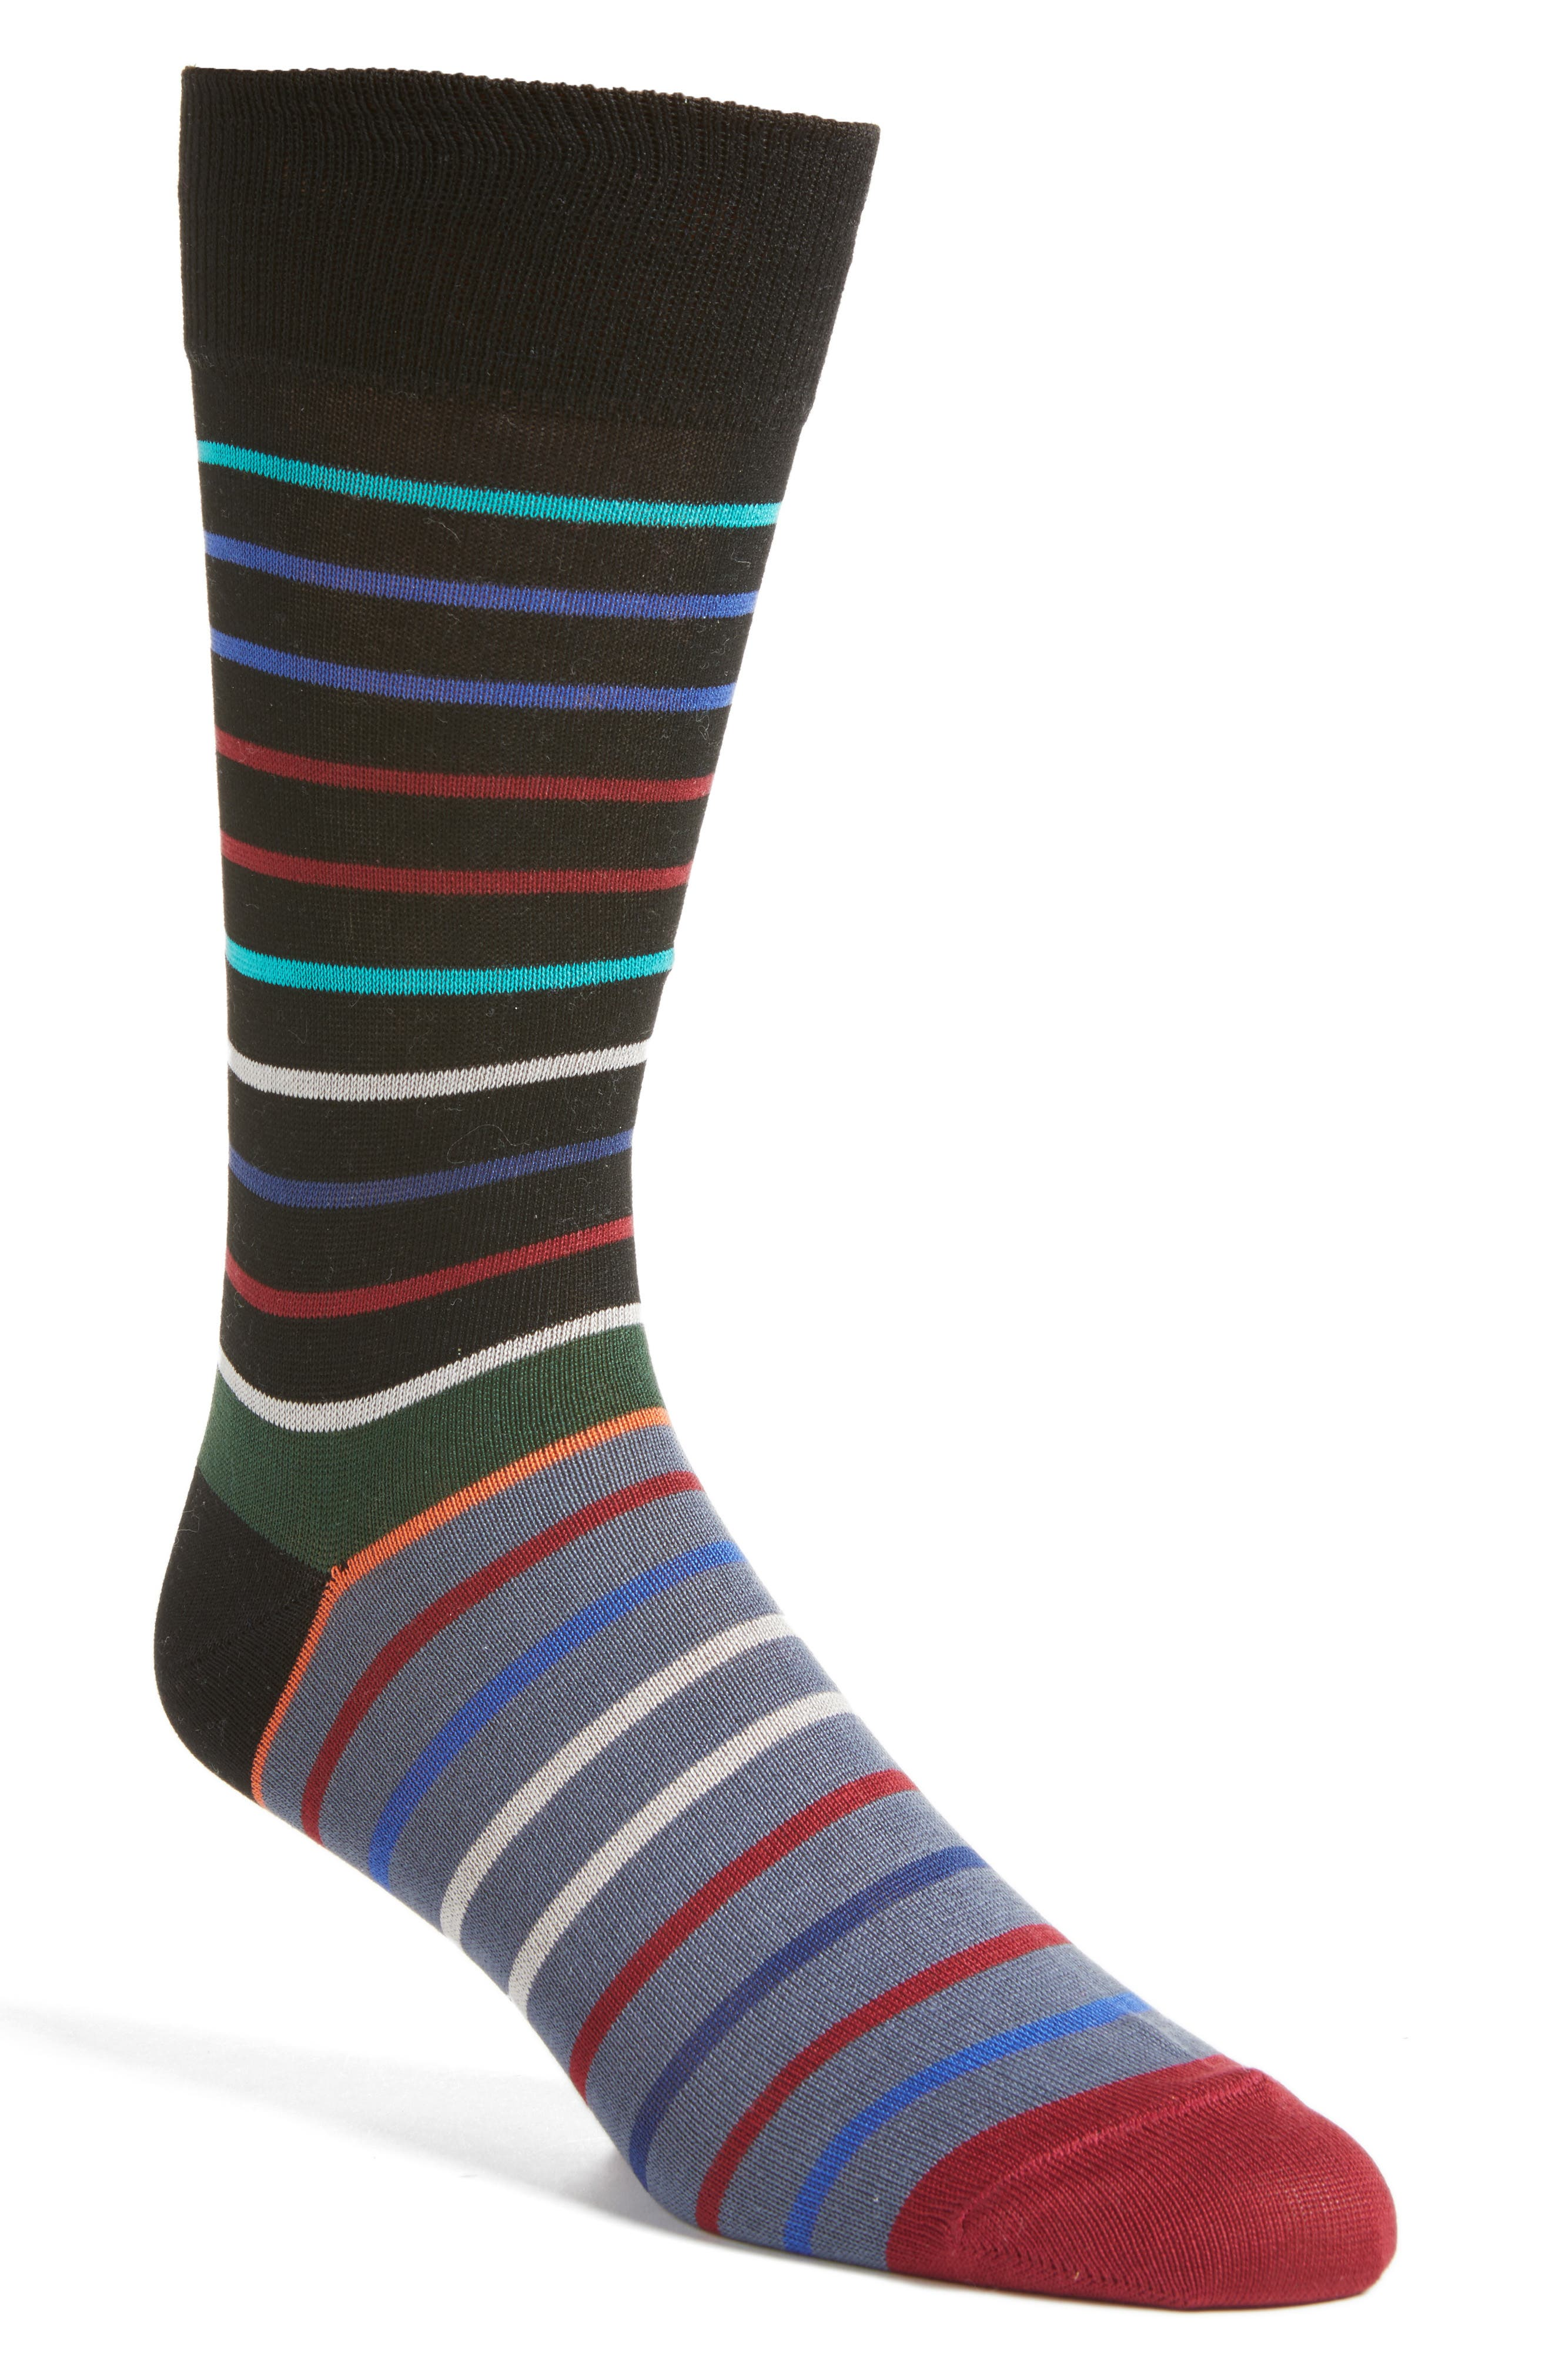 Paul Smith Echo Stripe Socks